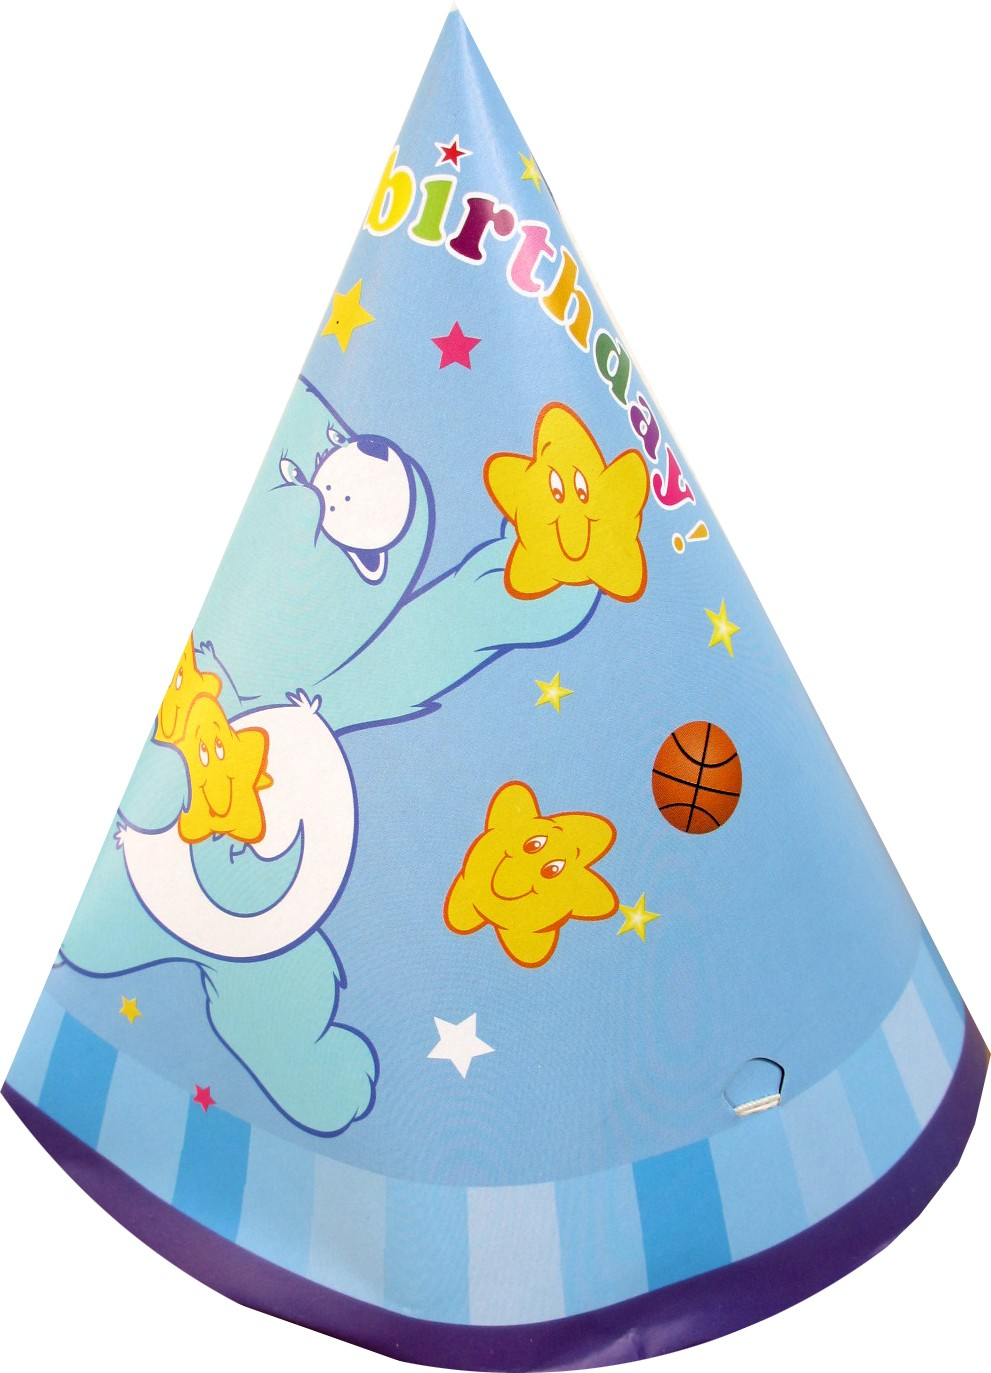 Happy Birthday Teddy Bear Cone Hats - Blue (Pack of 10)